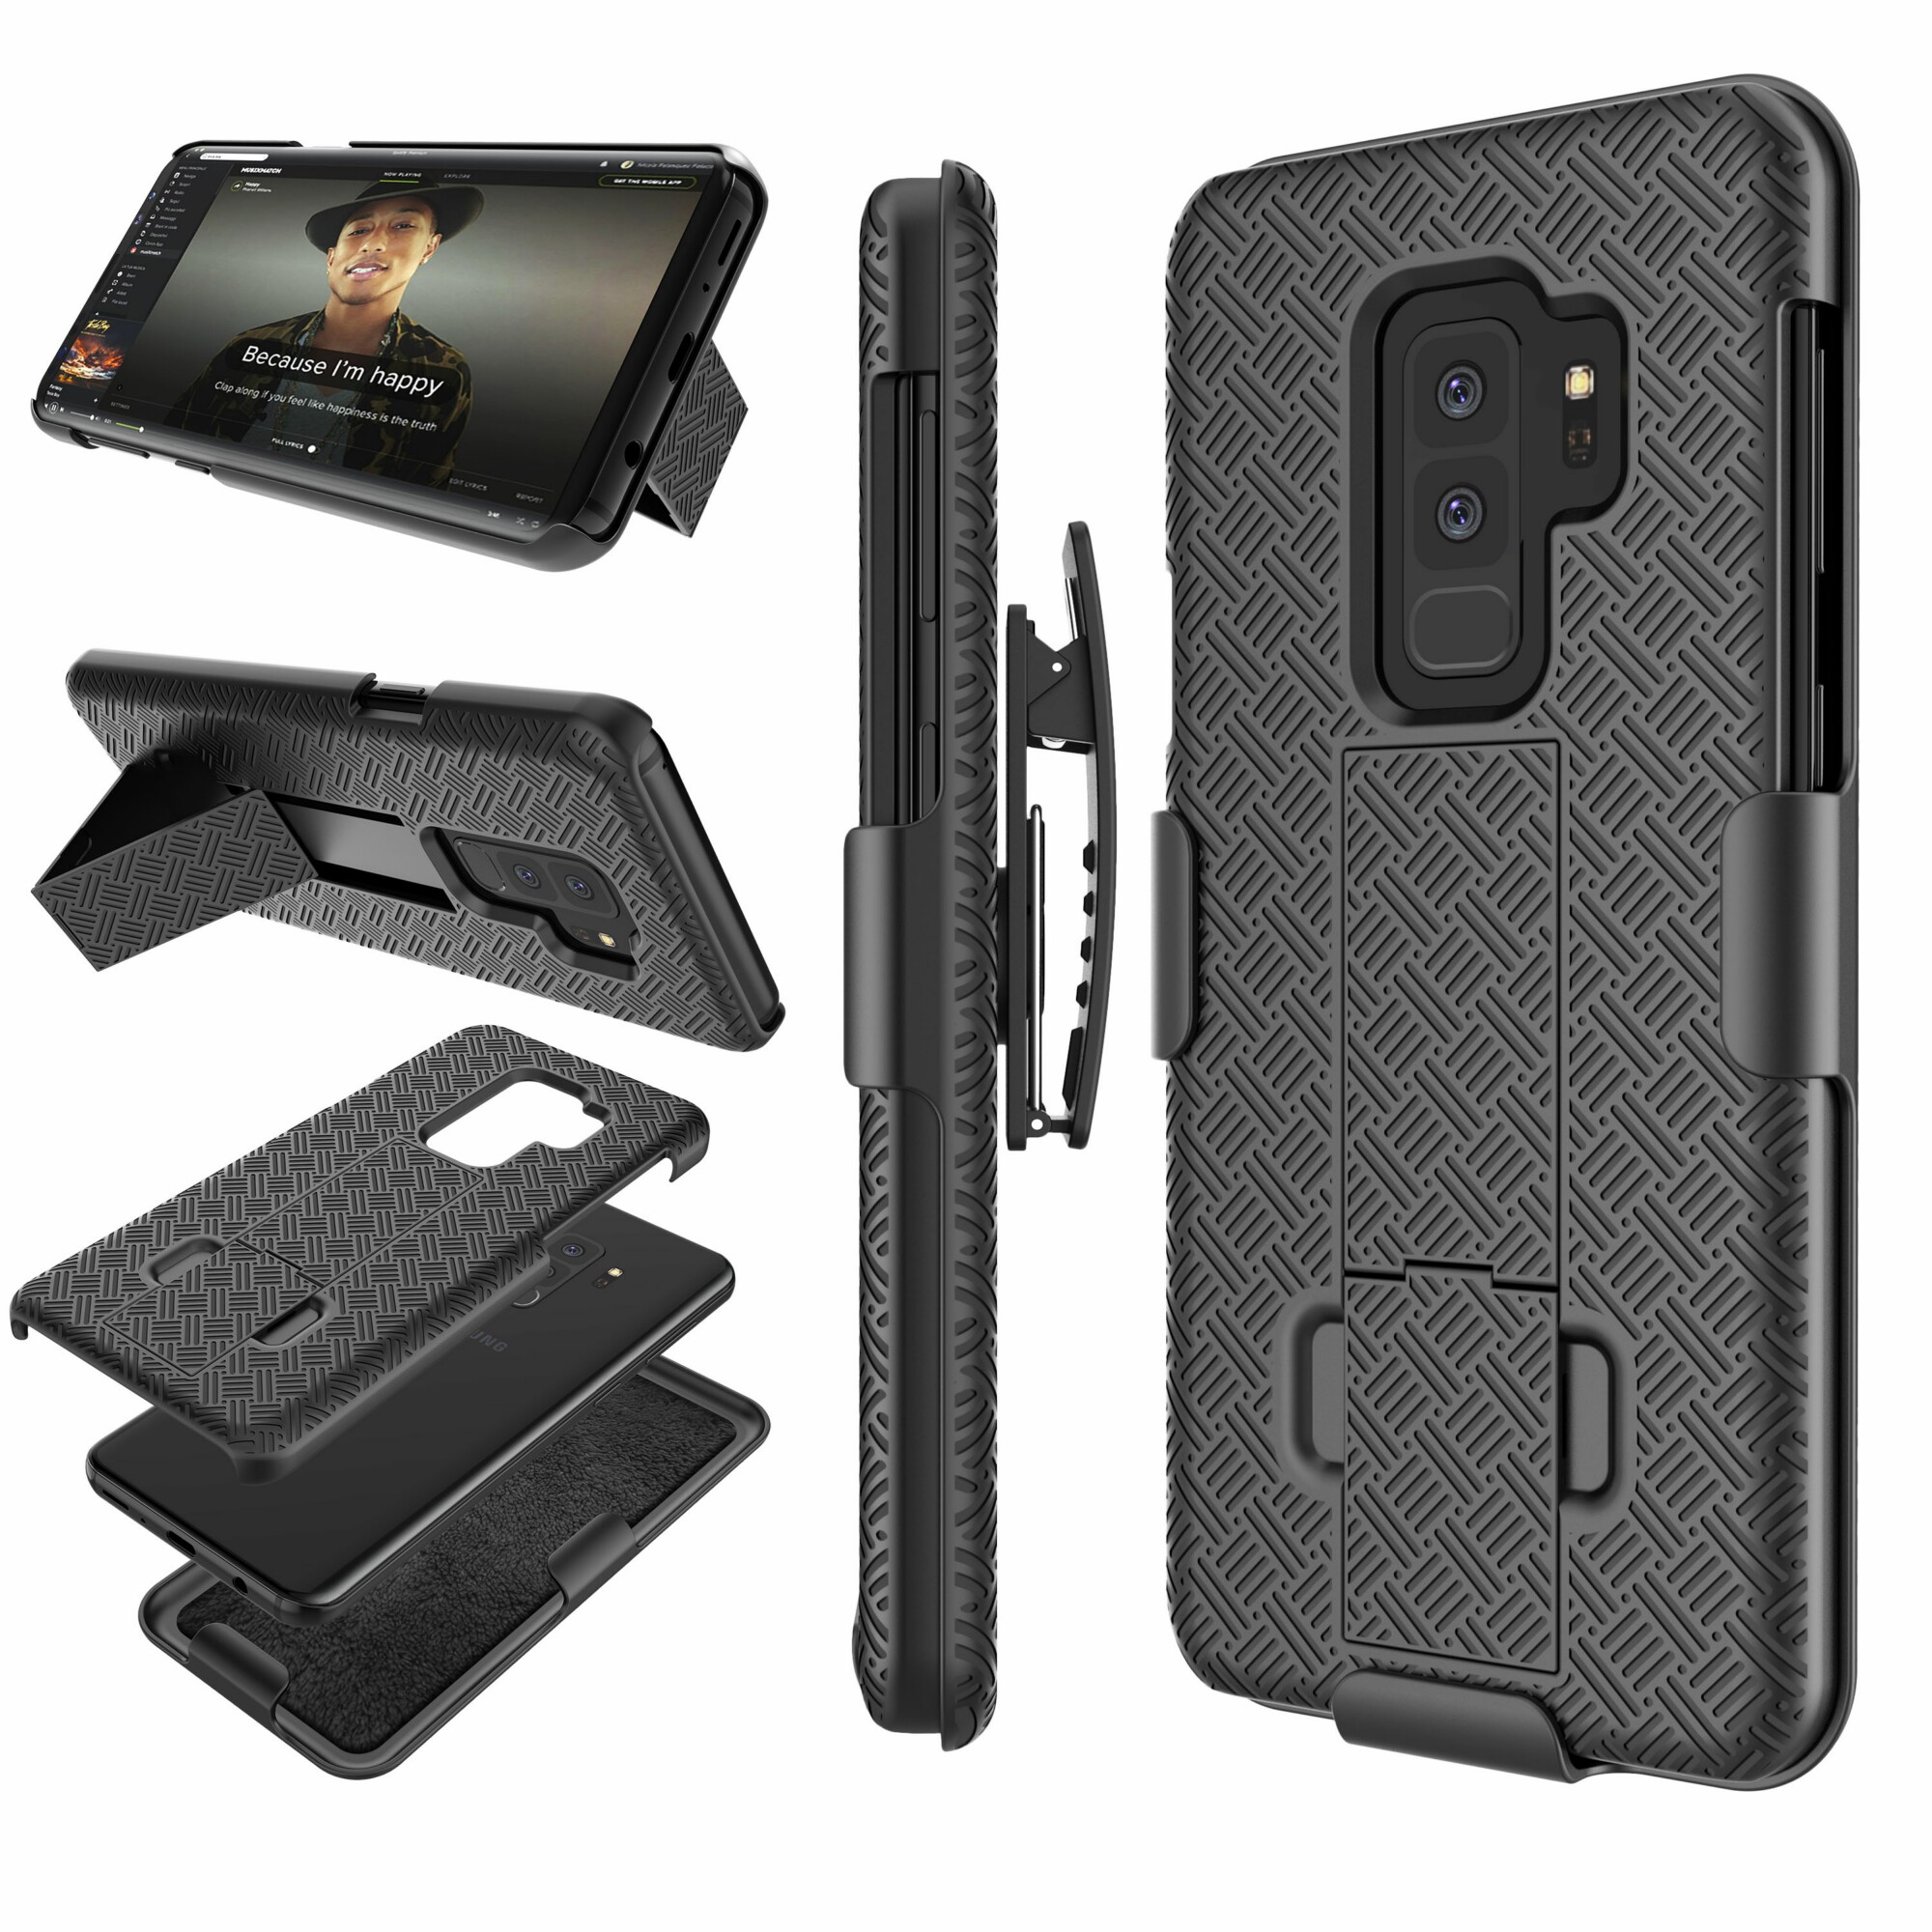 Samsung Galaxy S9 Plus Case, Galaxy S9 Plus Hard Case, Njjex Hard Shell [Built-in Kickstand] Holster Locking Belt Swivel Clip Defender Secure Slim Case Cover For Samsung Galaxy S9 Plus (2018)